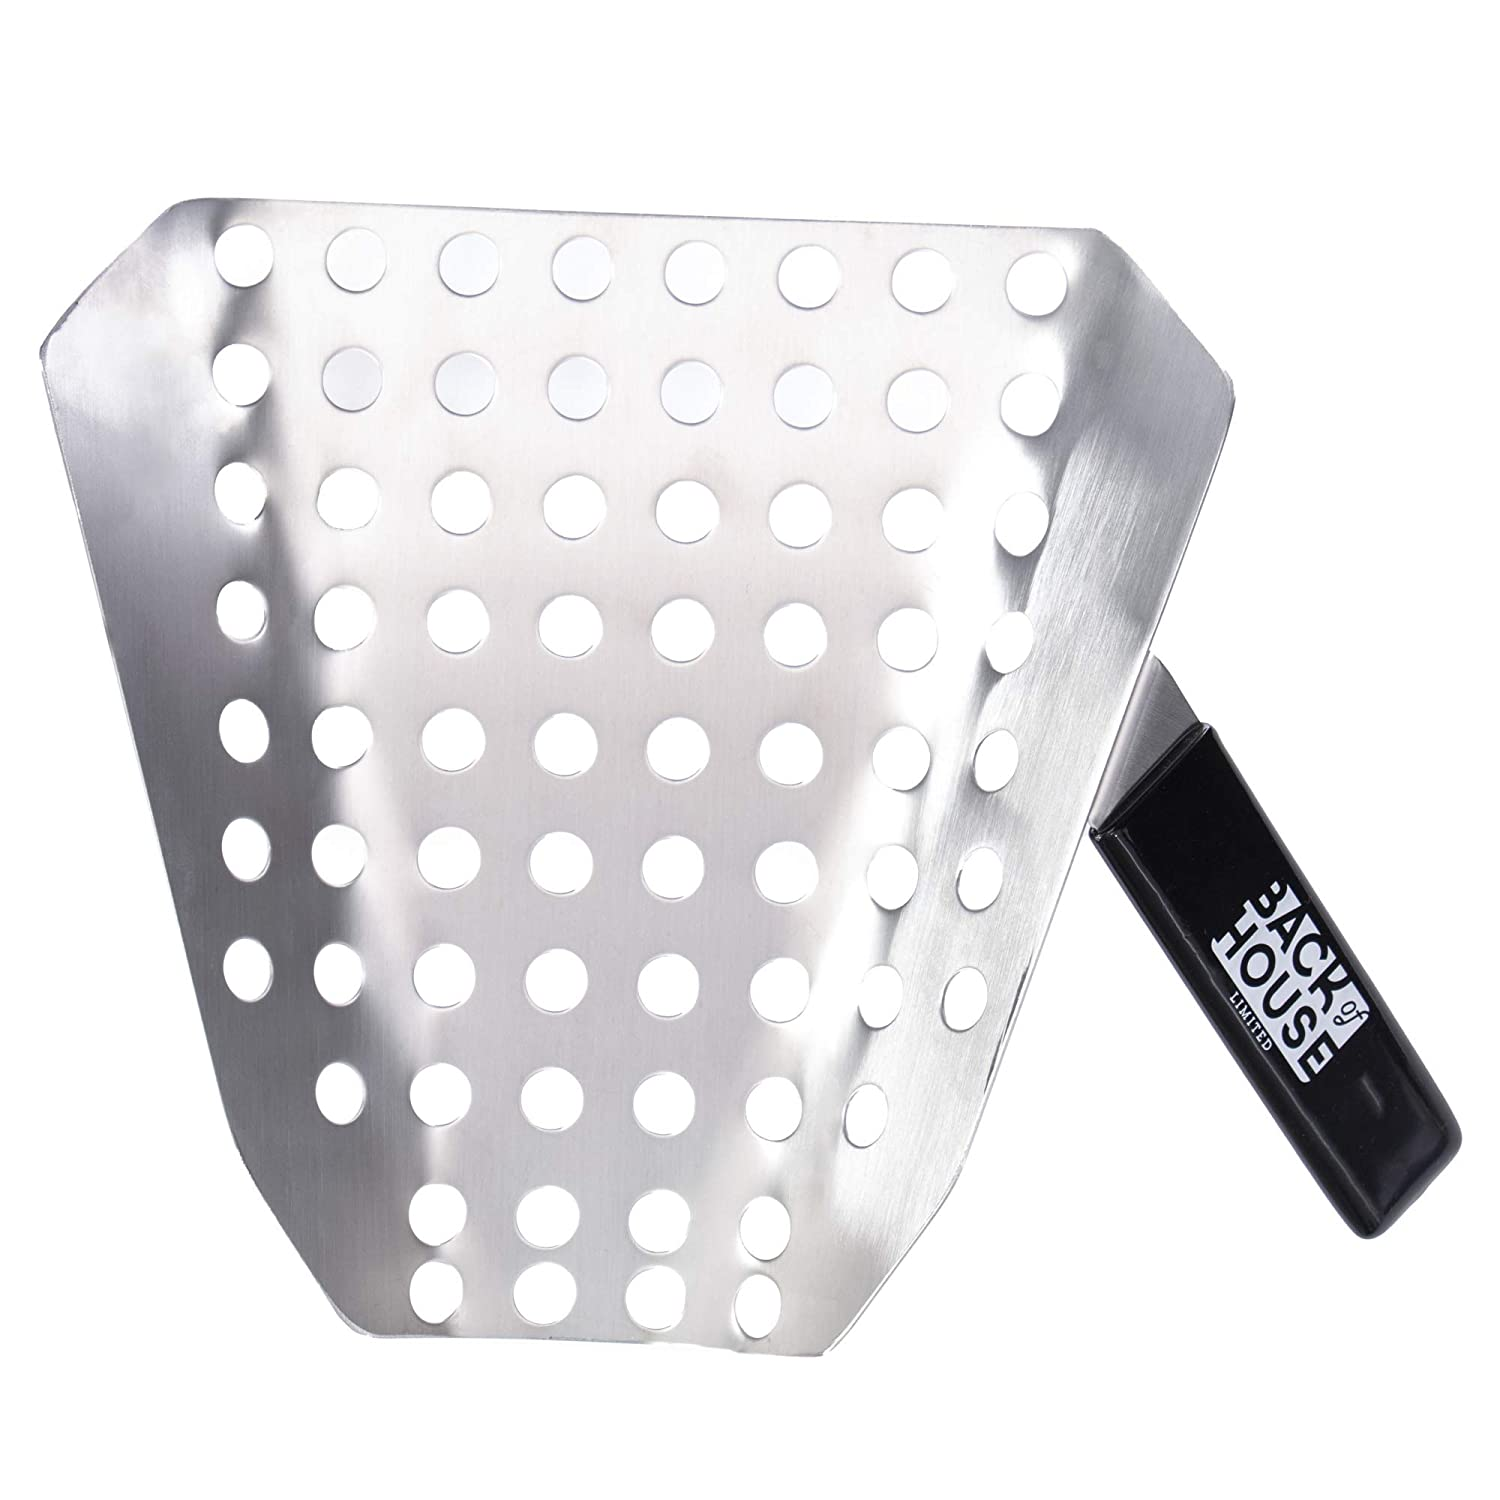 Popcorn Speed Scoop – Perforated Stainless Steel Quick-Fill Scooper for Bags, Buckets & Boxes, Removes Unpopped Kernels – Utility Serving Tool for Snacks, Candy, Dessert, Food, Ice & Dry Goods